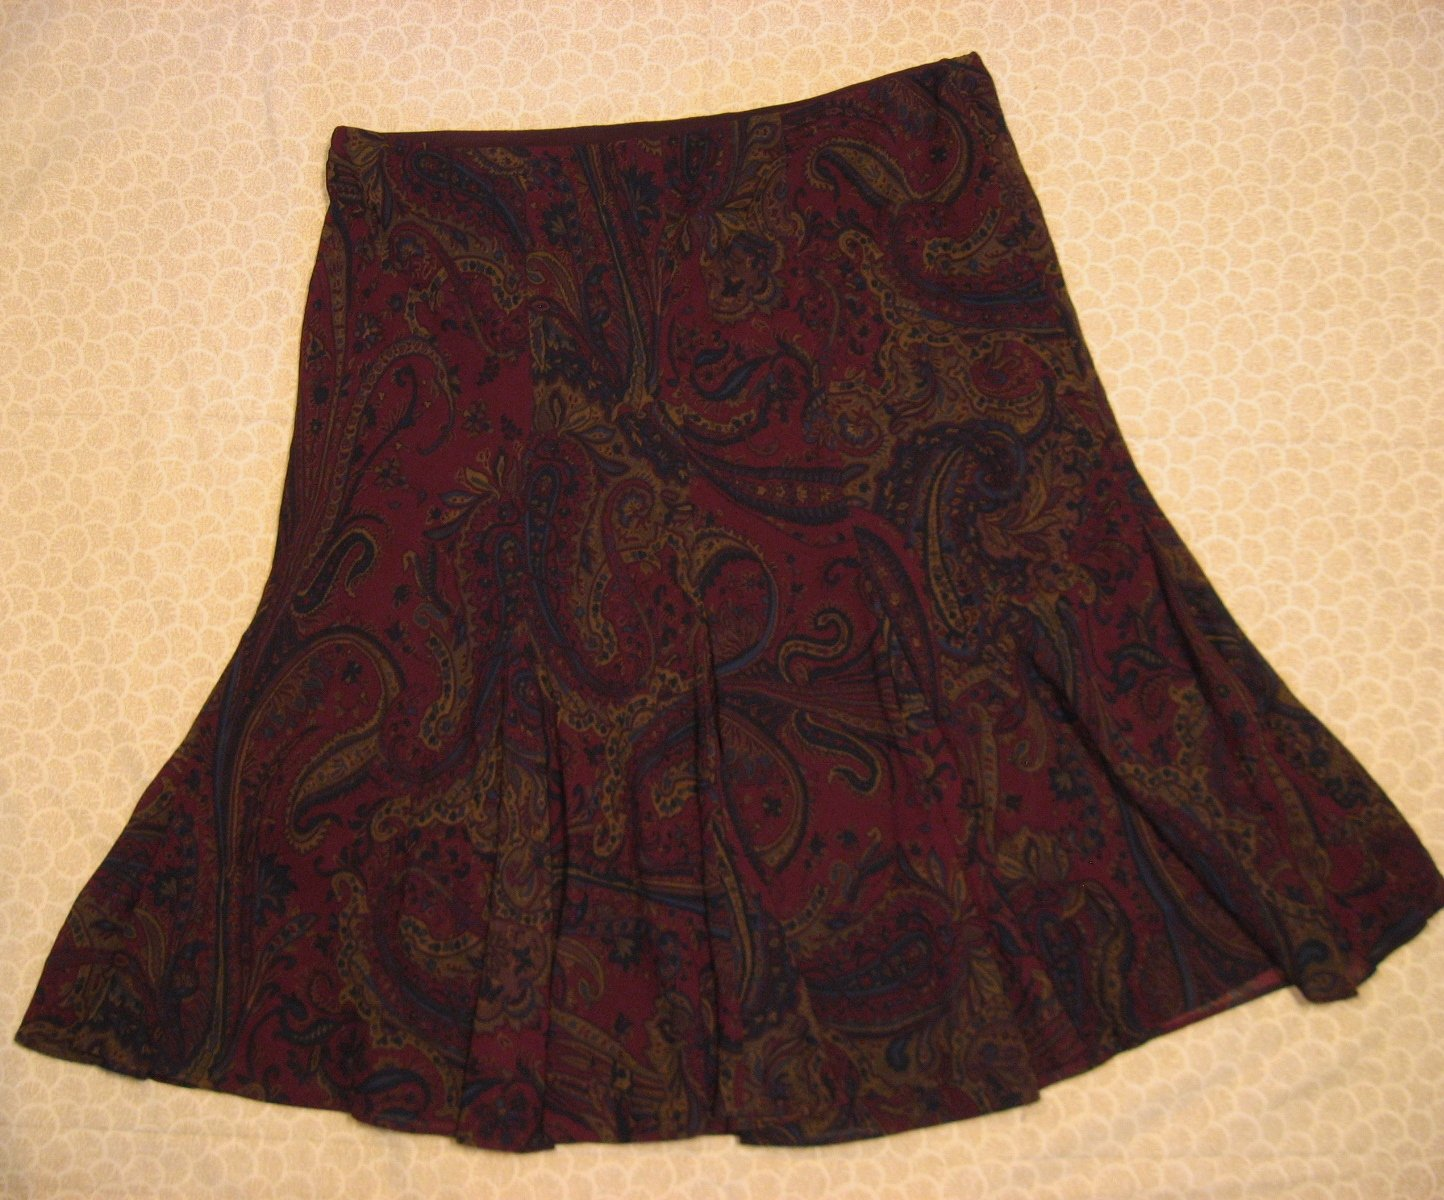 Chaps Burgundy Red Print Skirt 12 34 Inch Waist 2 Layer Full Floral